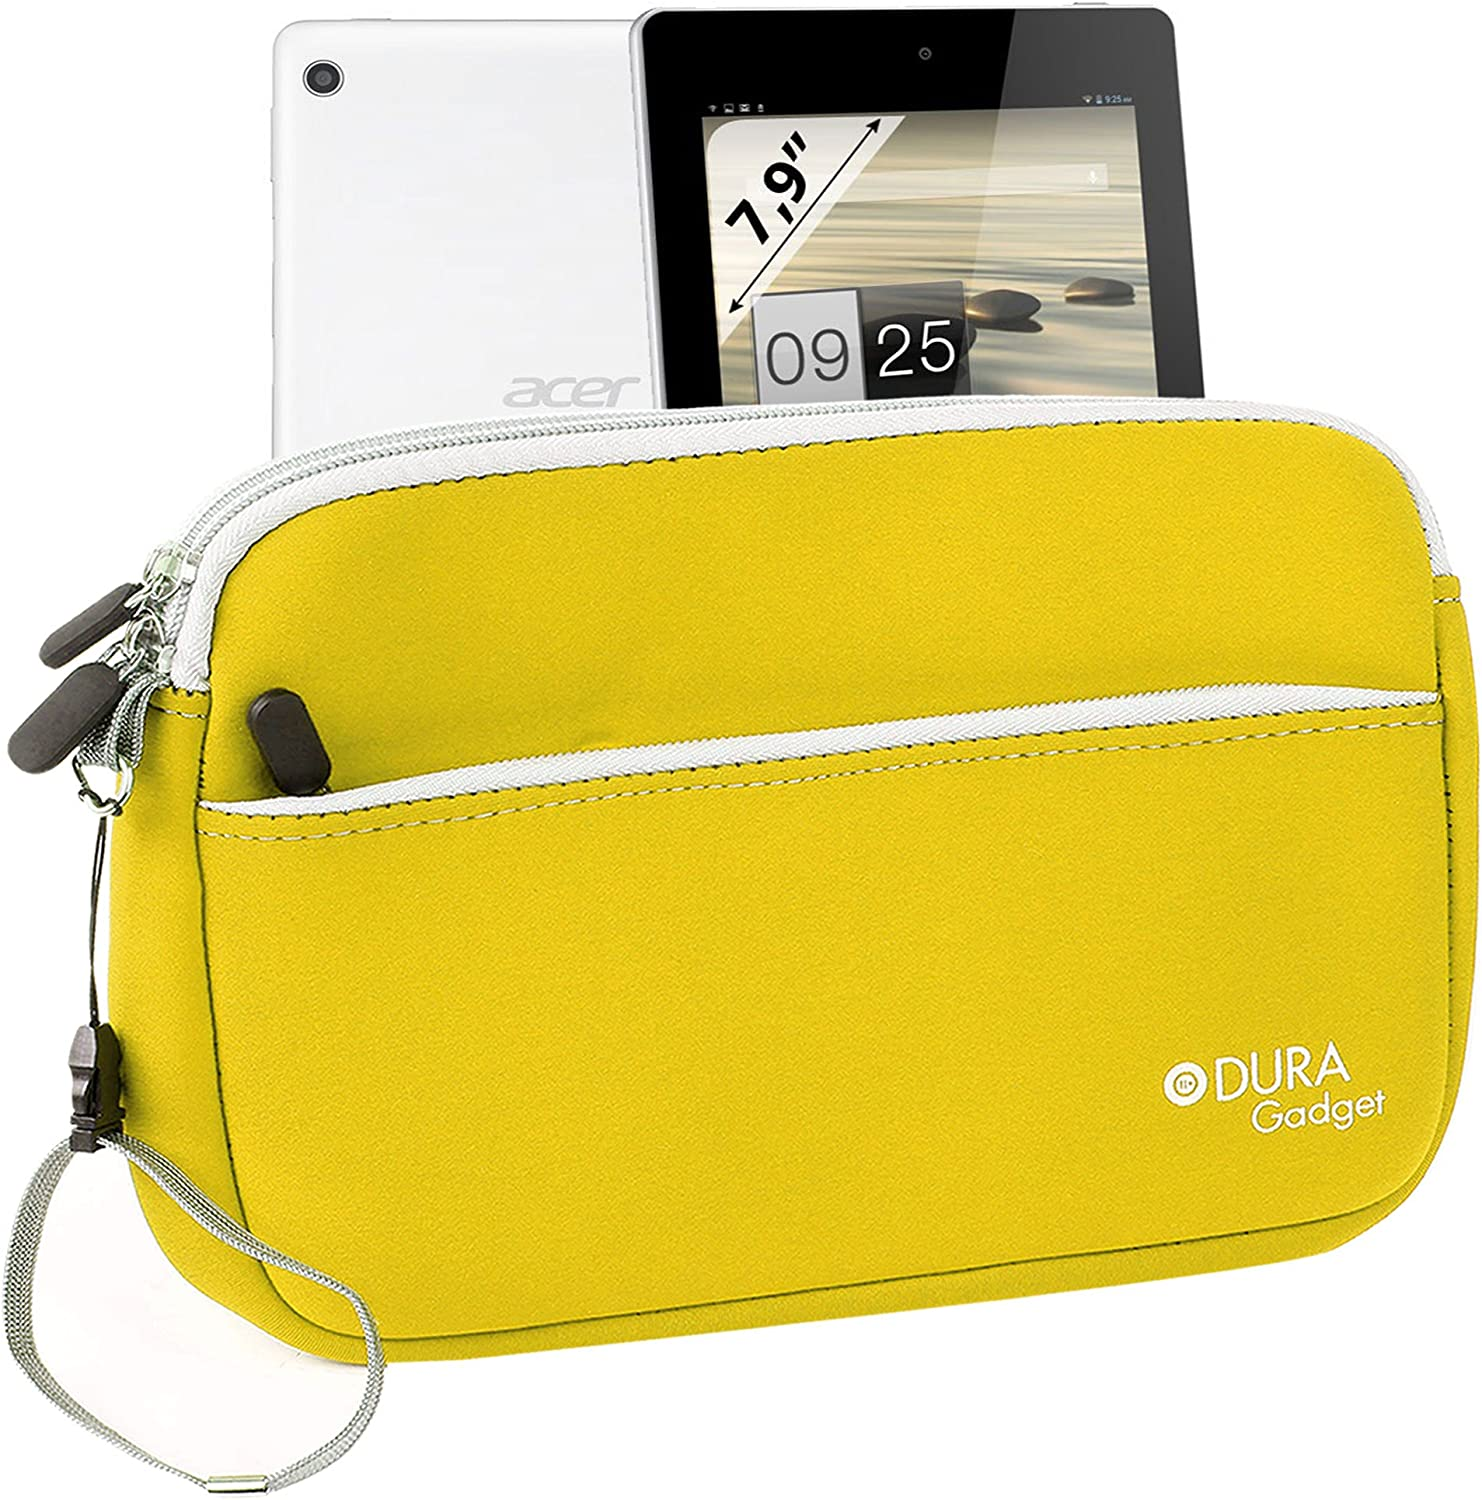 DURAGADGET Lemon Yellow 'Travel' Neoprene Case with Zipped Front Storage Compartment - Compatible with Acer Iconia A1-810-L416 7.9-Inch 16 GB Tablet